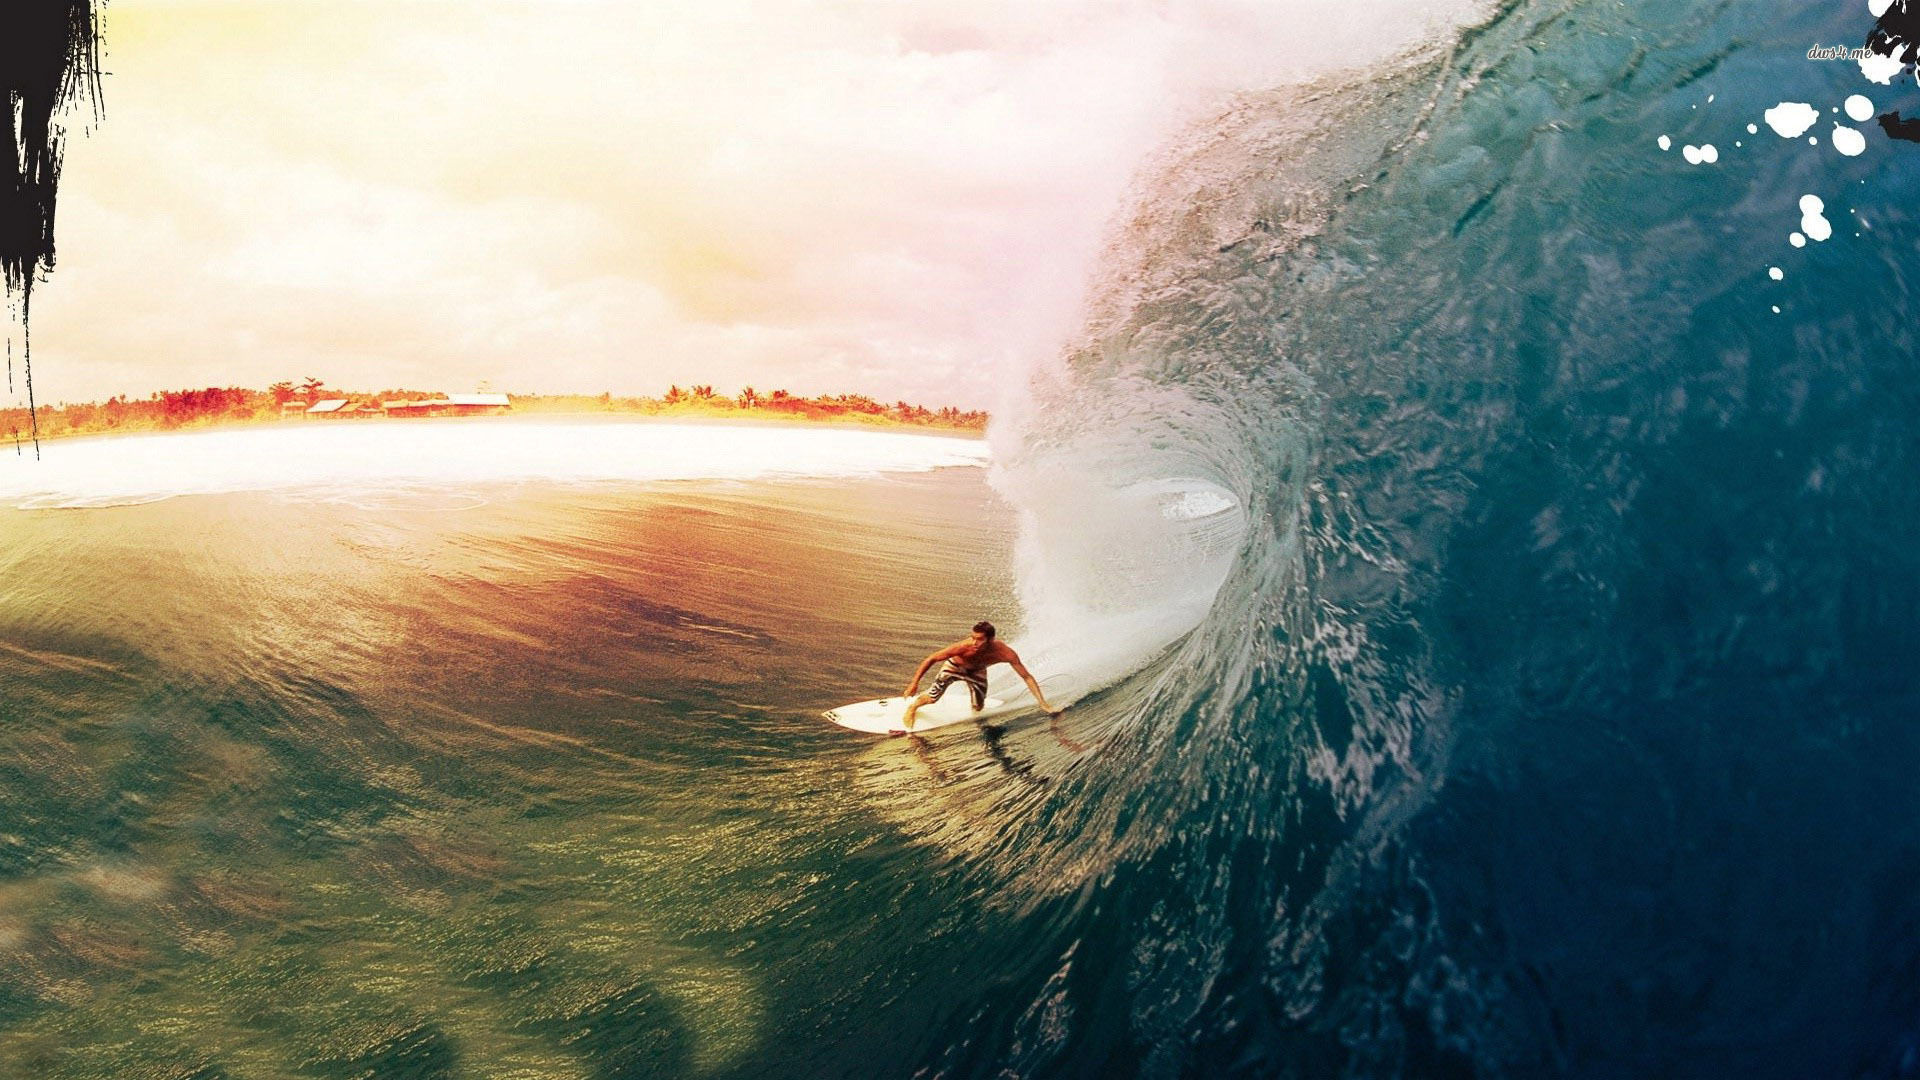 ... Surfer wallpaper 1920x1080 ...